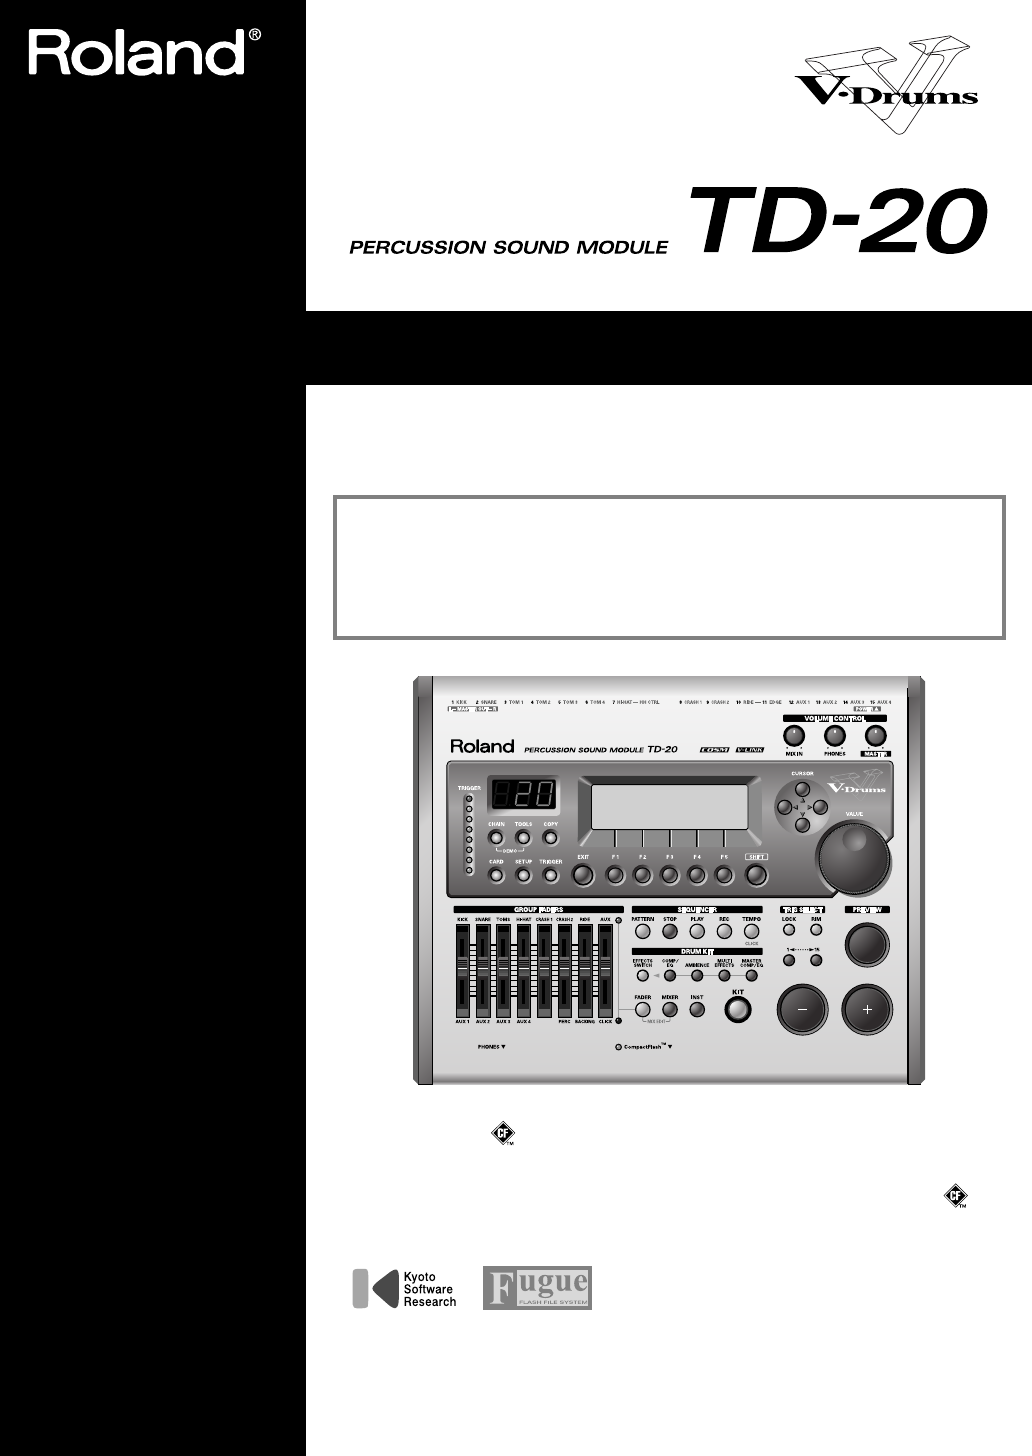 roland software download